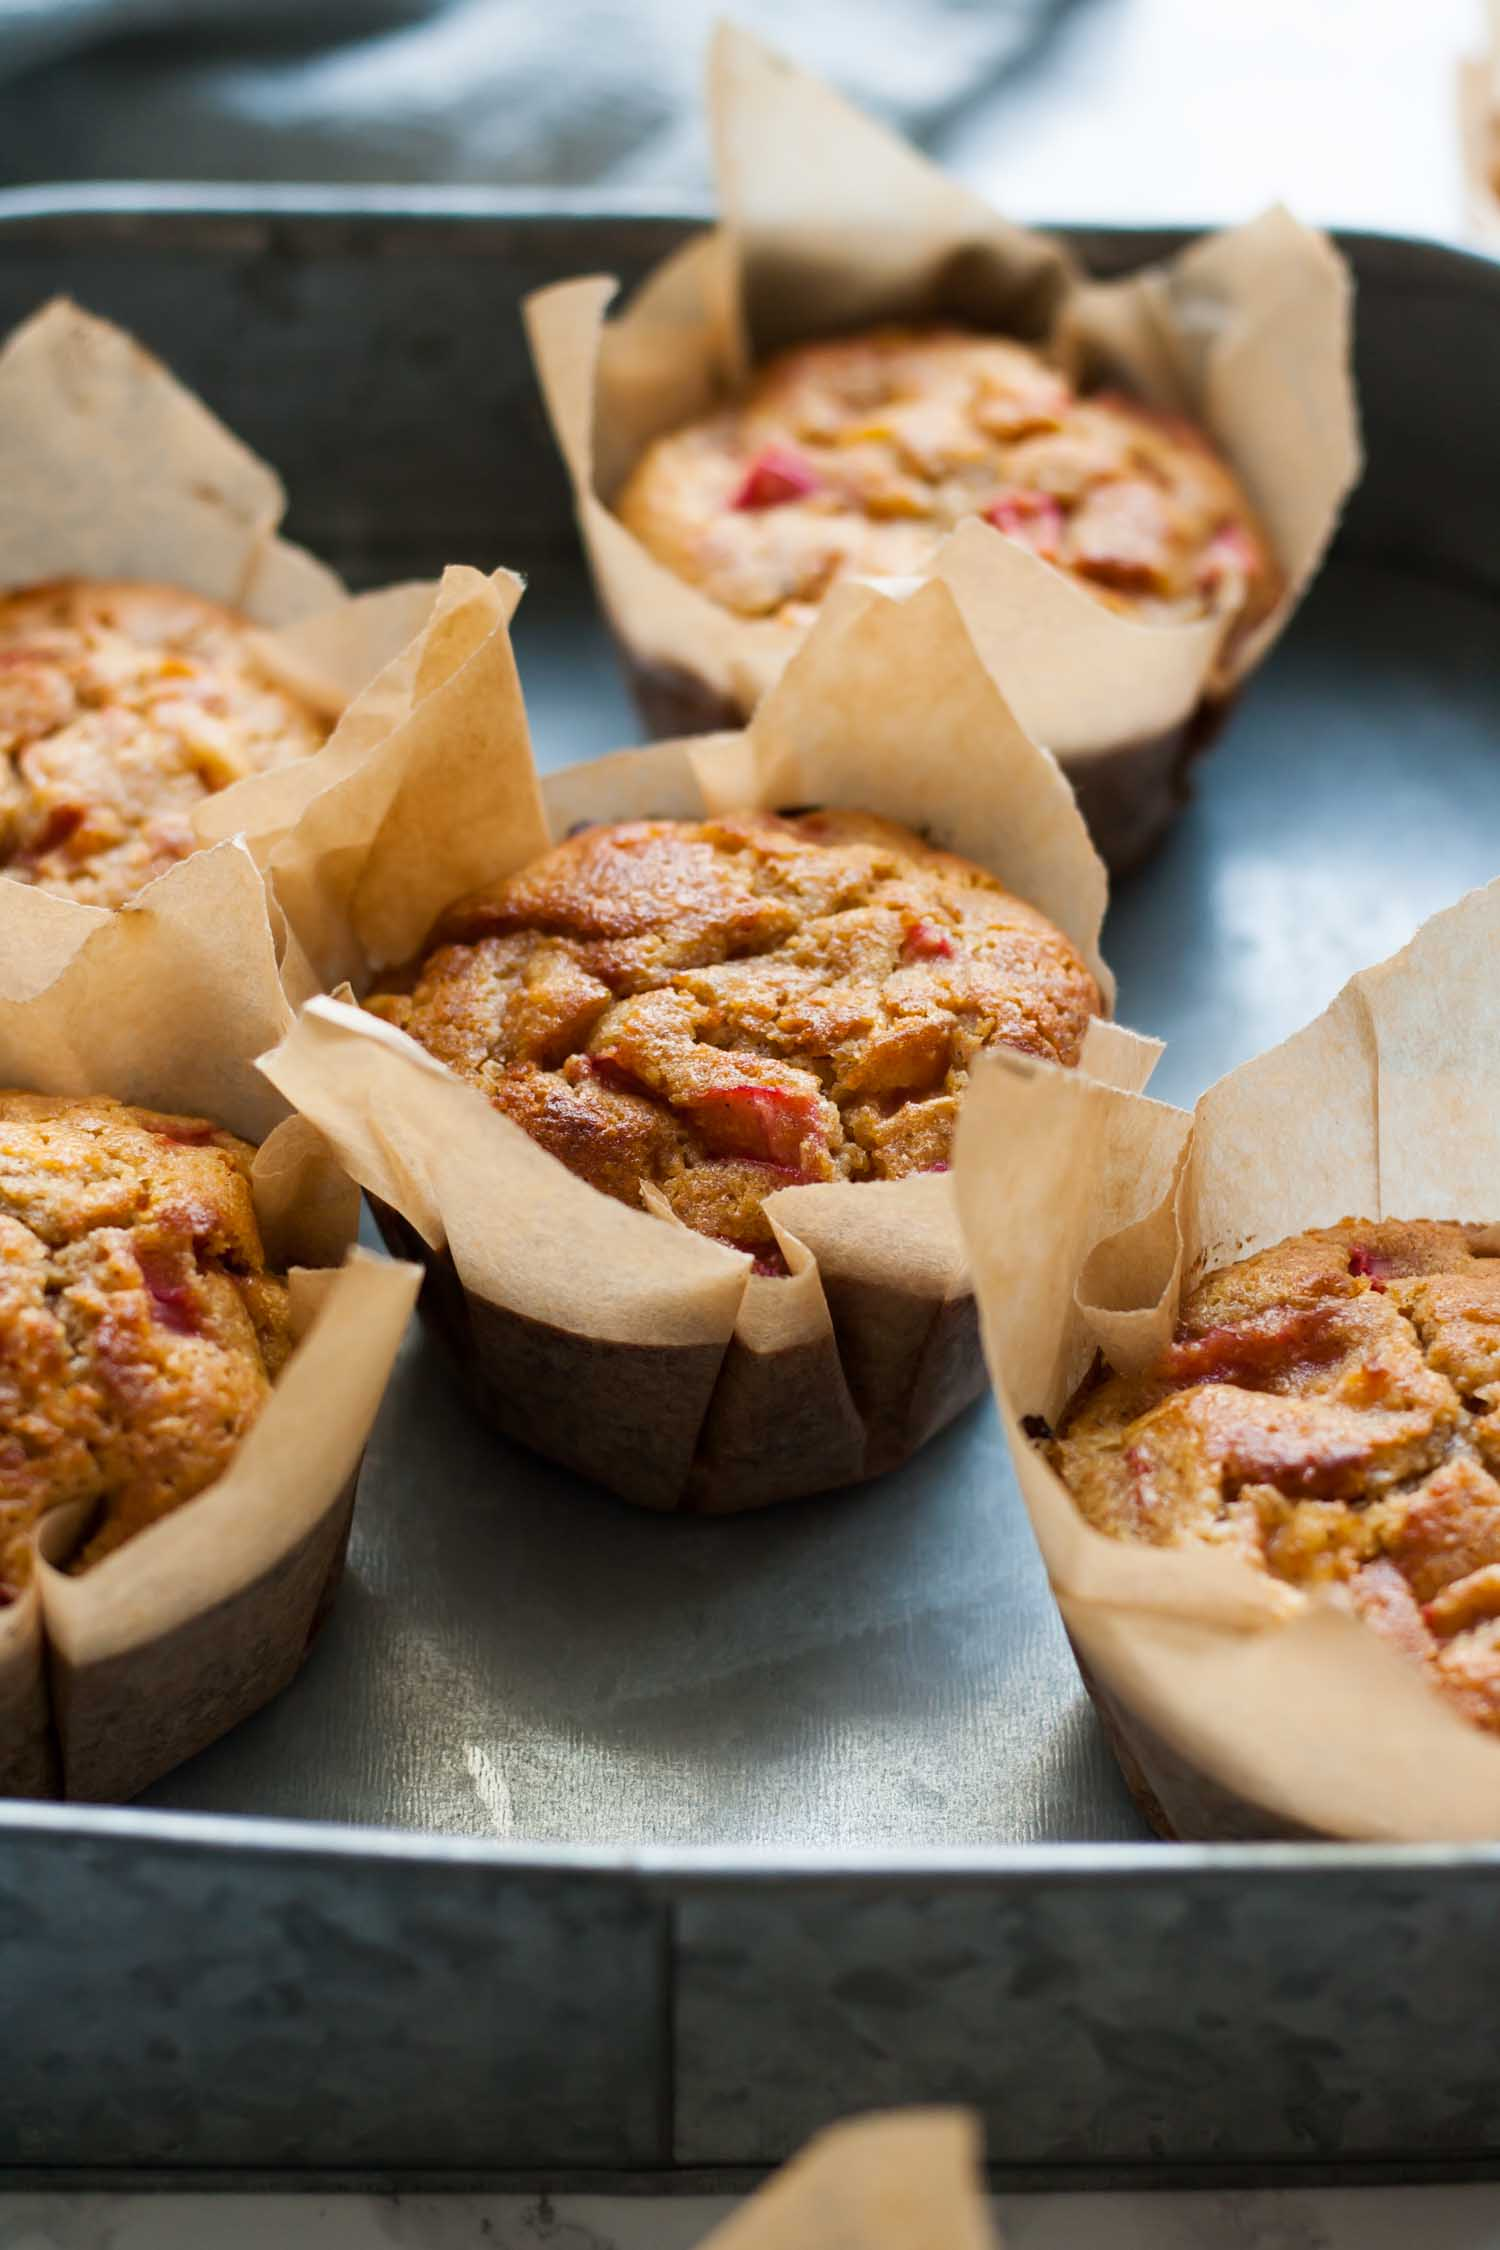 Blood Orange Rhubarb Muffins - these muffins are easy to make, full of delicious seasonal fruit and are perfect for breakfast! | eatloveeats.com